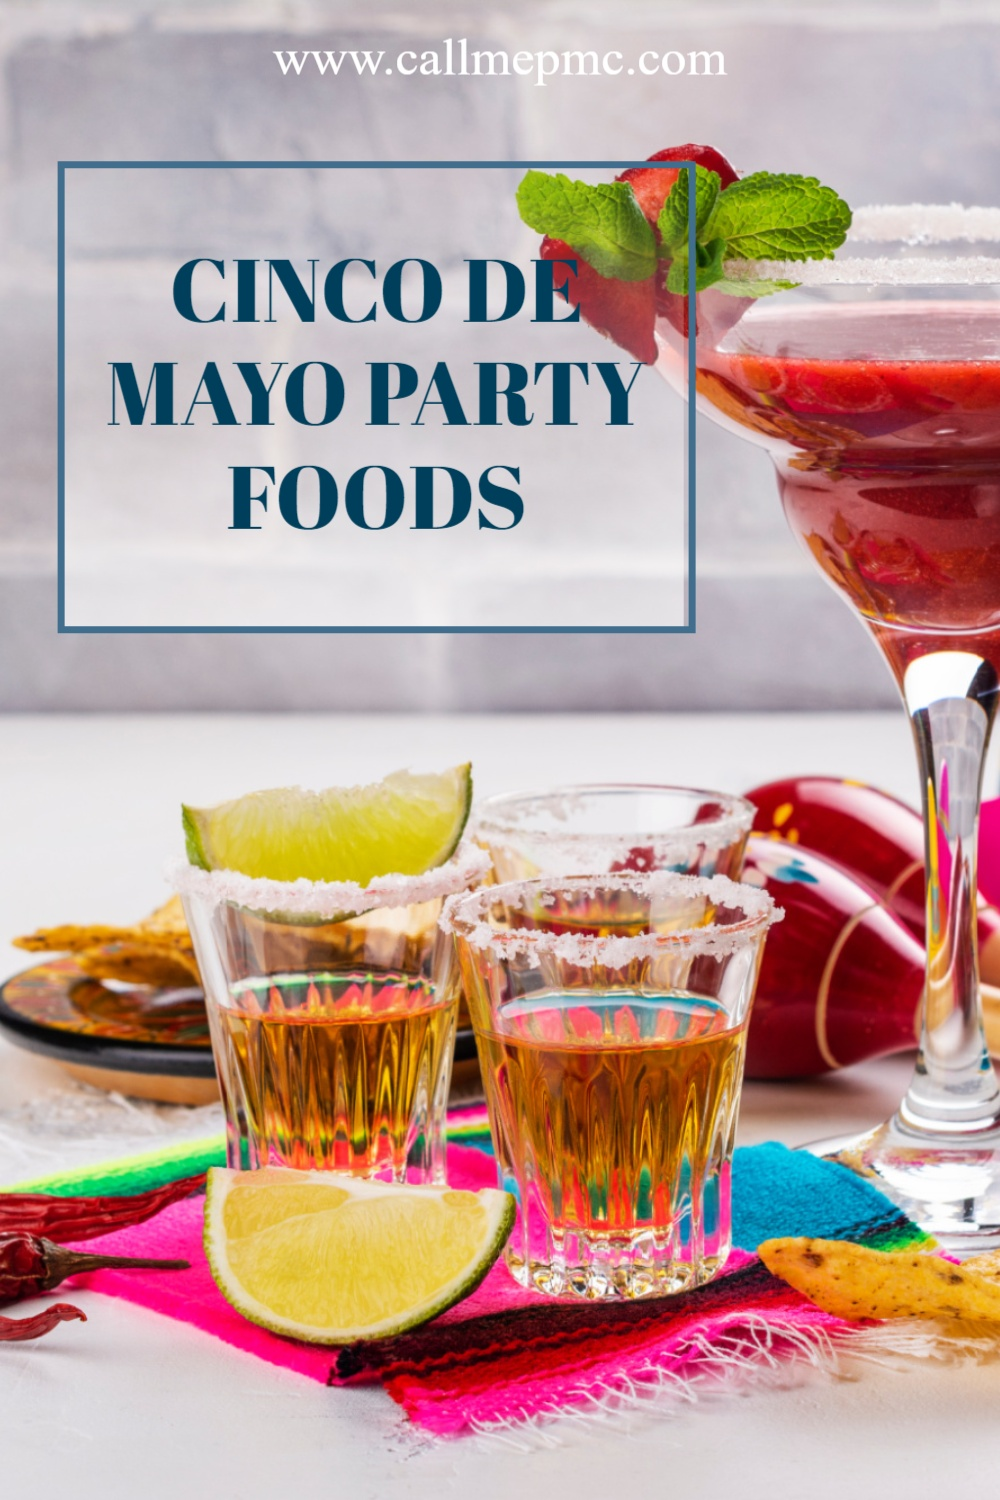 Cinco De Mayo Party Foods, some of our favorite Mexican recipes including tacos, side dishes, appetizers, & cocktails. #TexMex #recipes #holidays #party #partyfood #cincodemayorecipes #cincodemayo